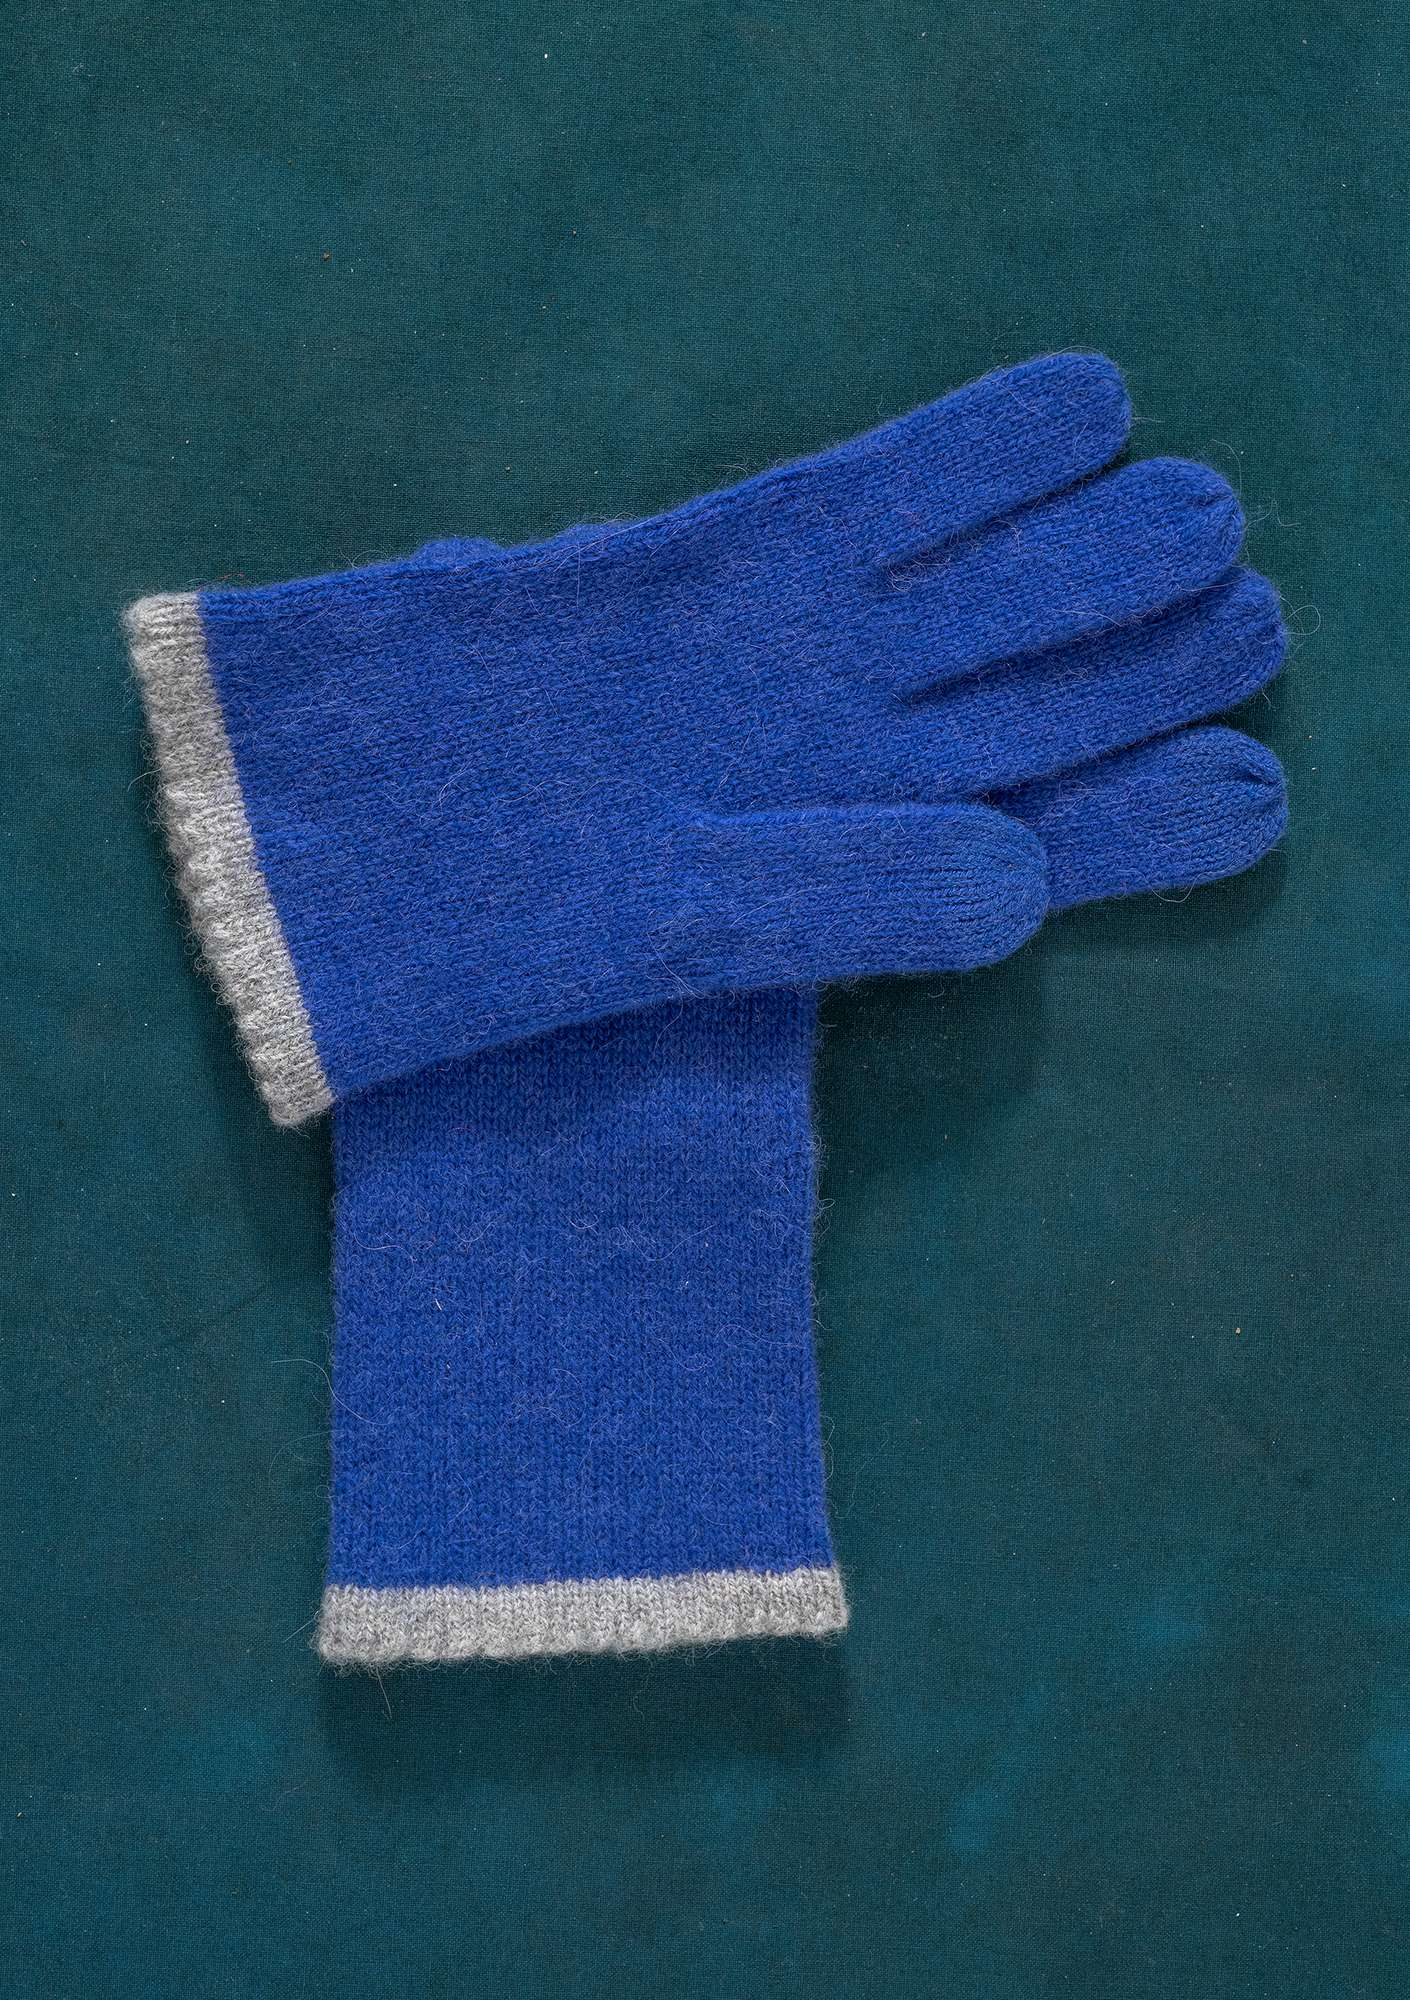 Knitted Linros gloves lupin